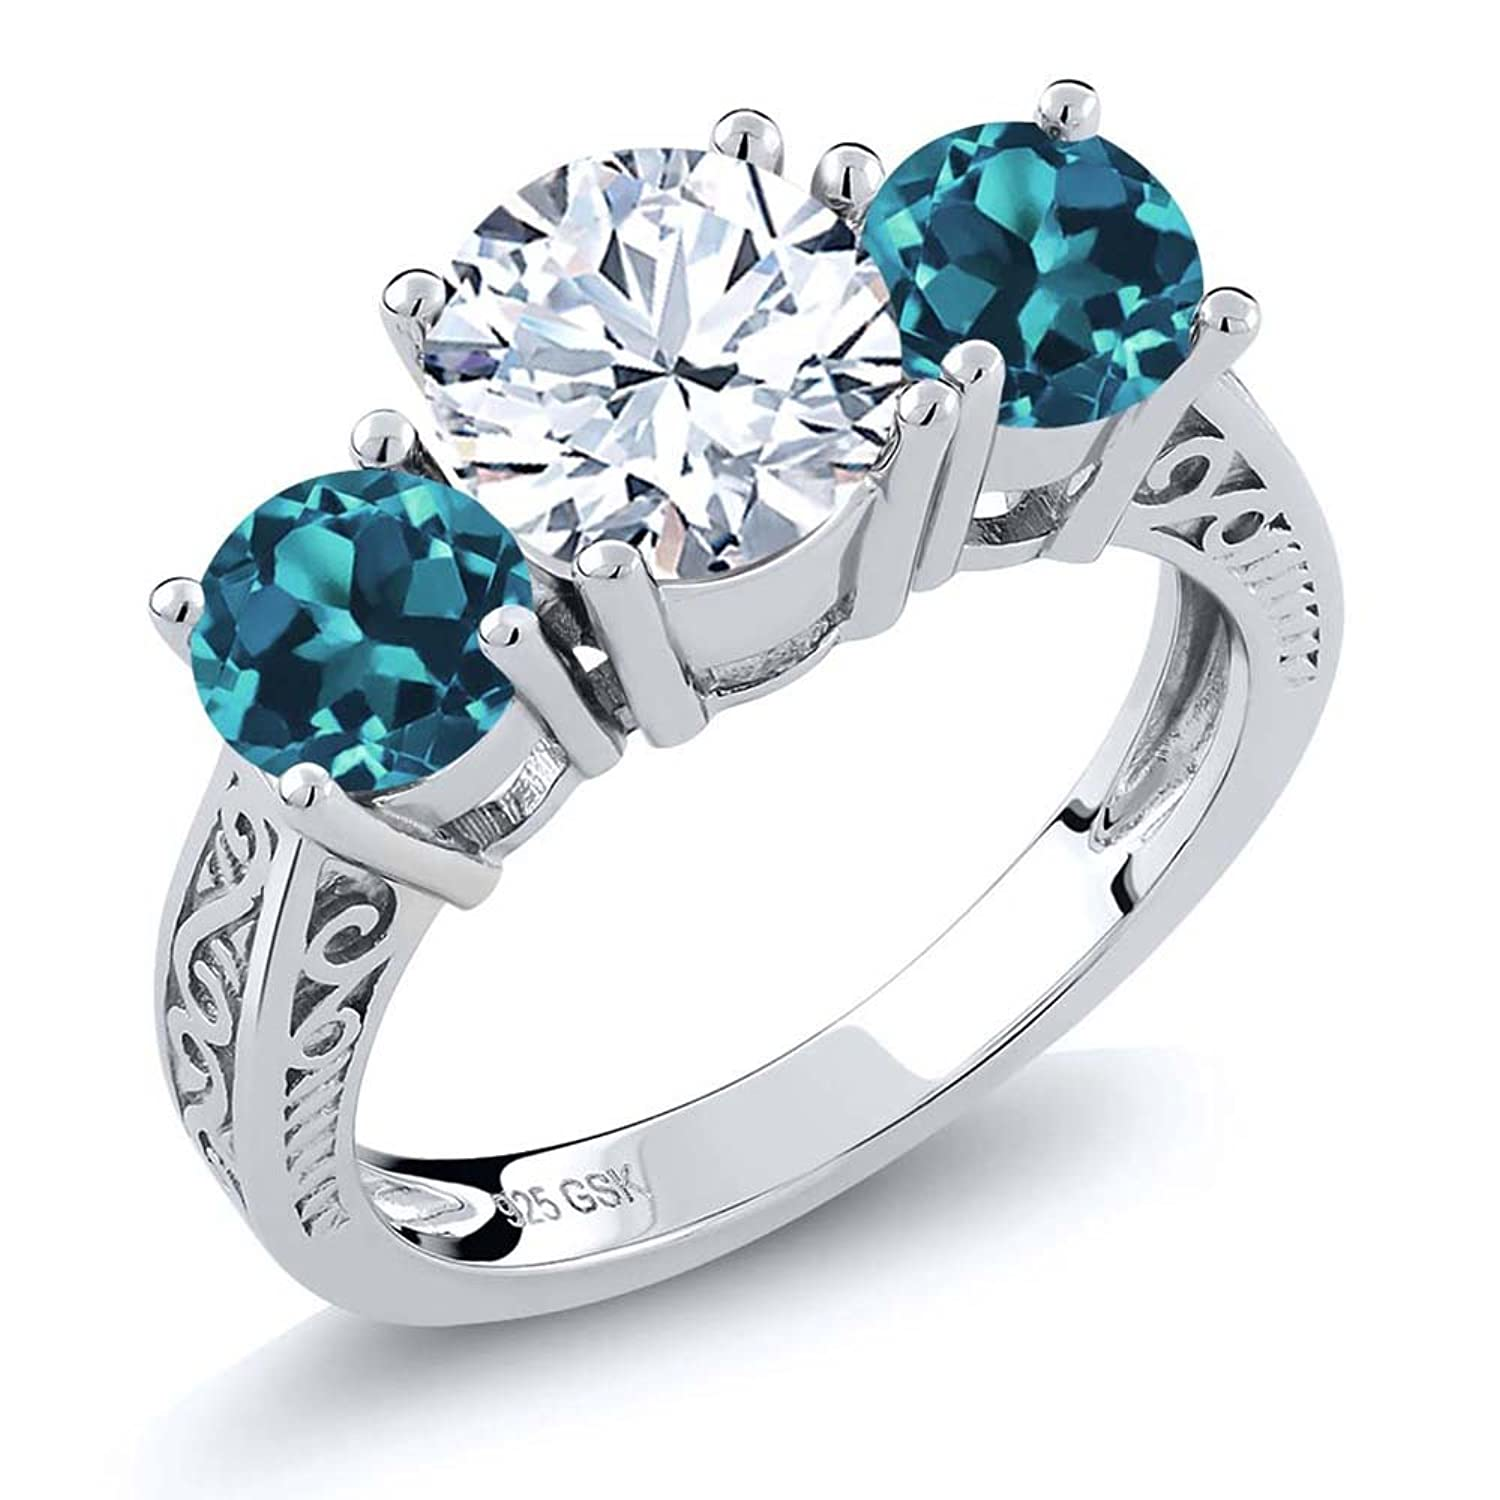 2.40 Ct Round White and London Blue Topaz Gemstone Birthstone 925 Sterling Silver 3-Stone Ring (Available in size 5, 6, 7, 8, 9)